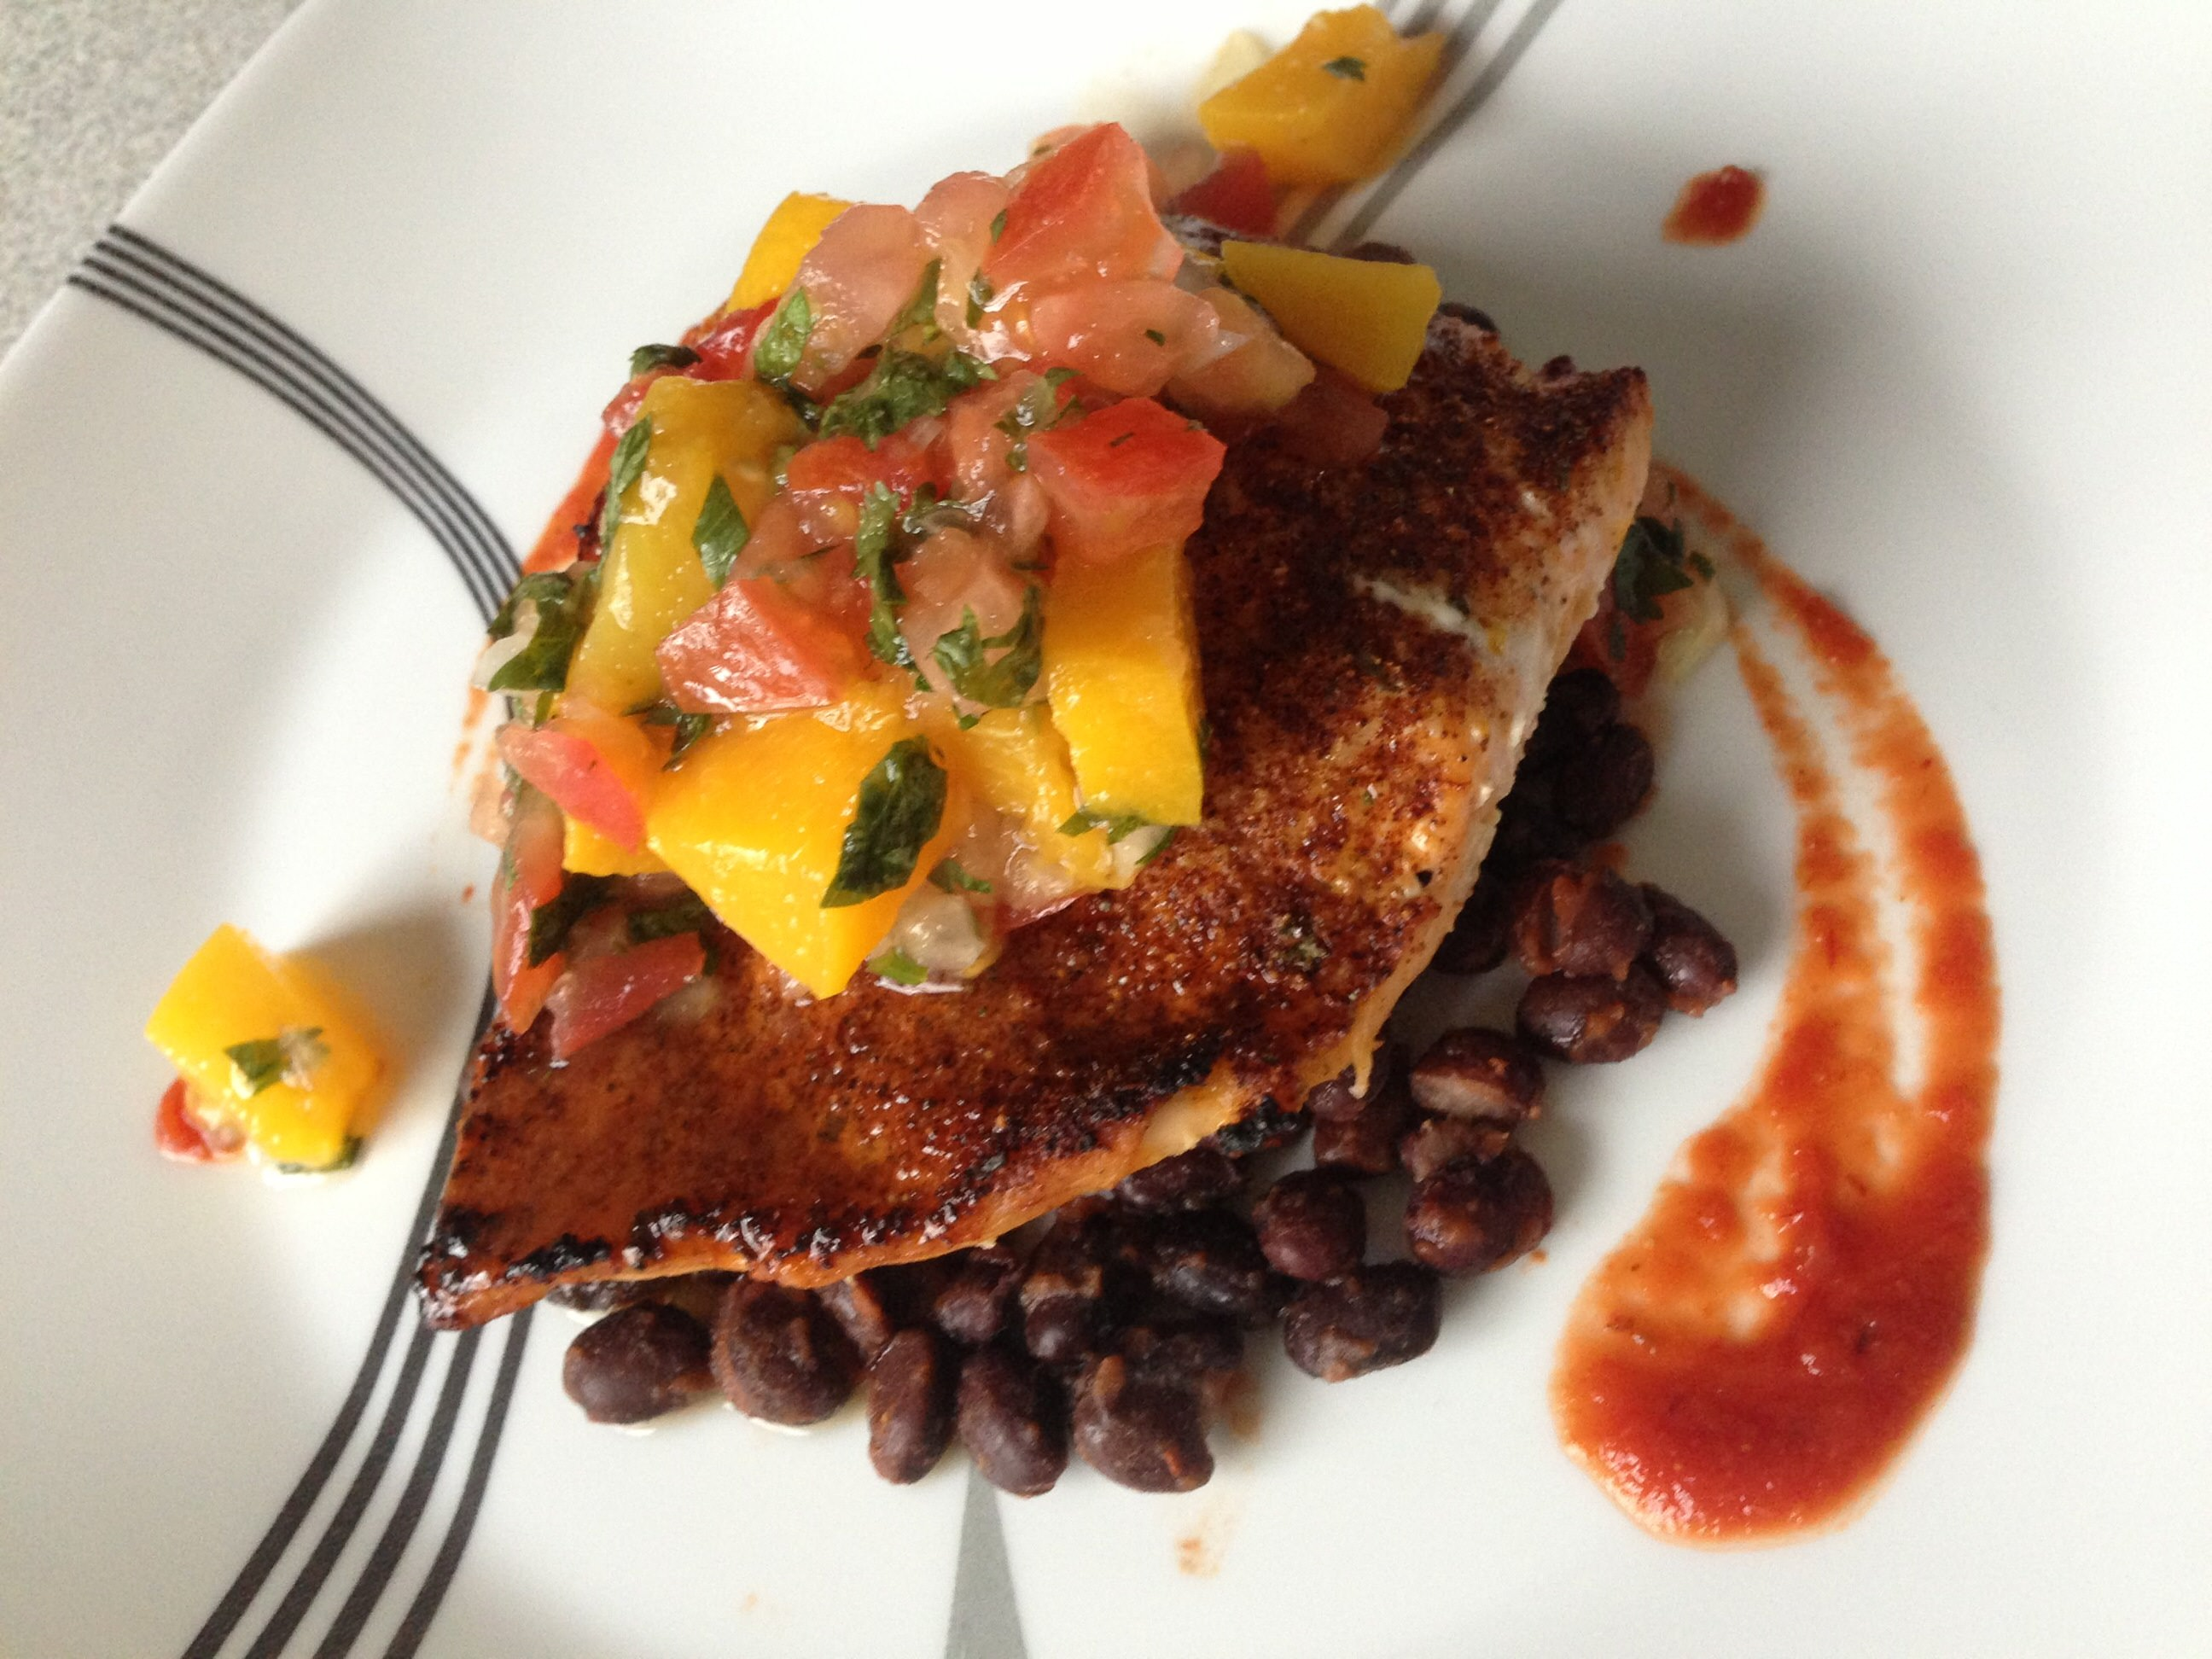 Chipotle Salmon with Peach Pico de Gallo and Roasted Black Beans